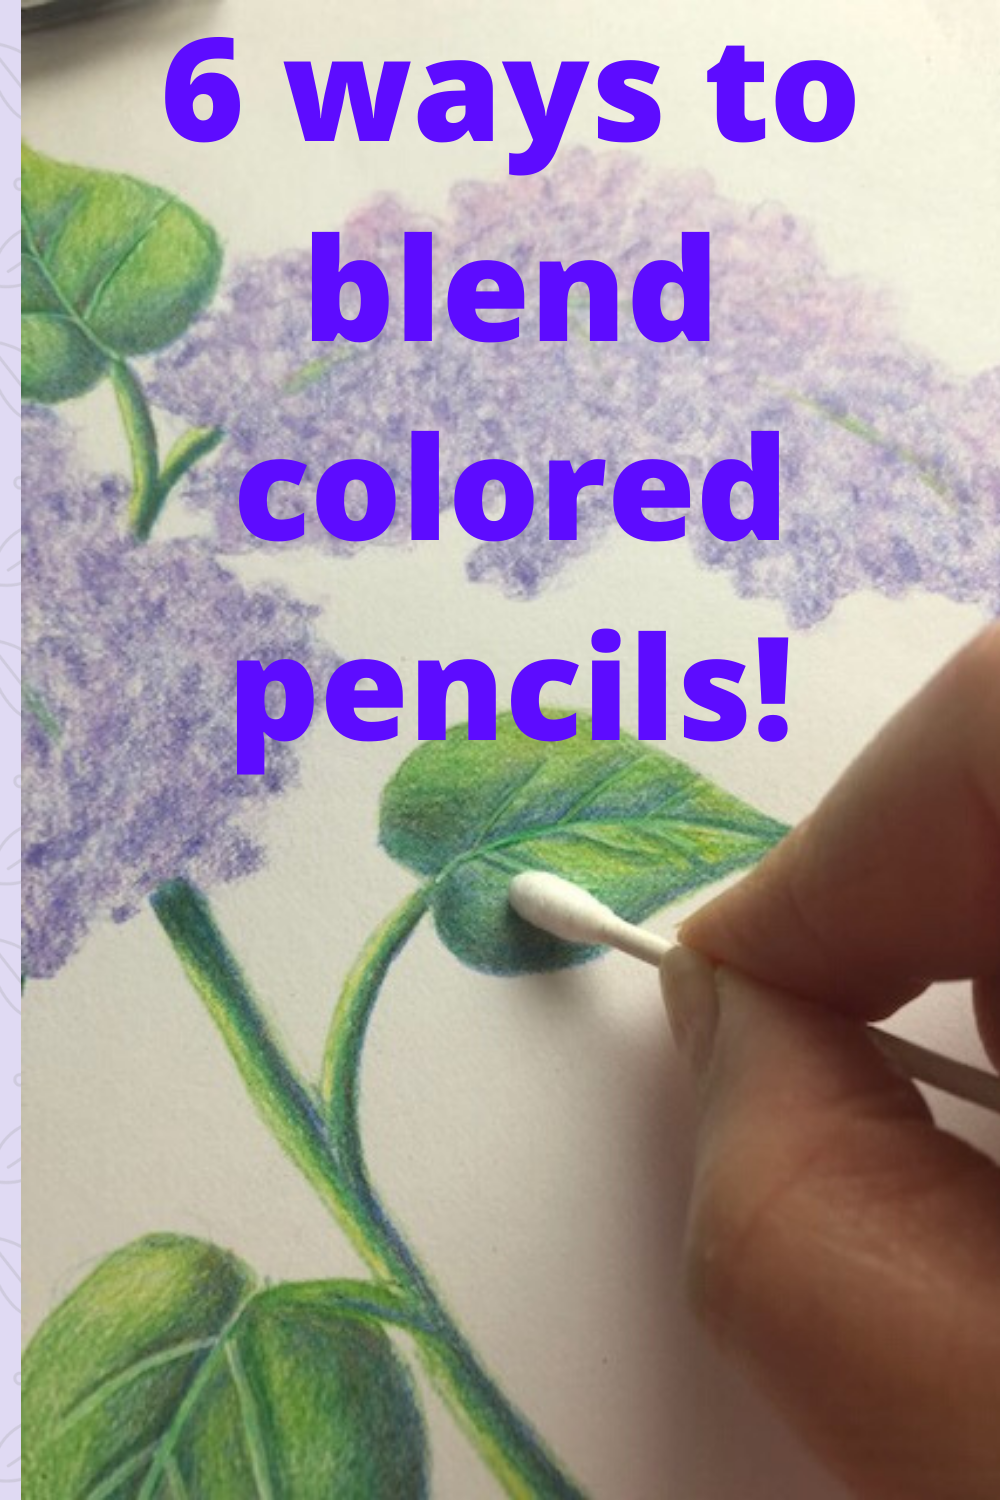 6 Ways to Blend Colored Pencils!